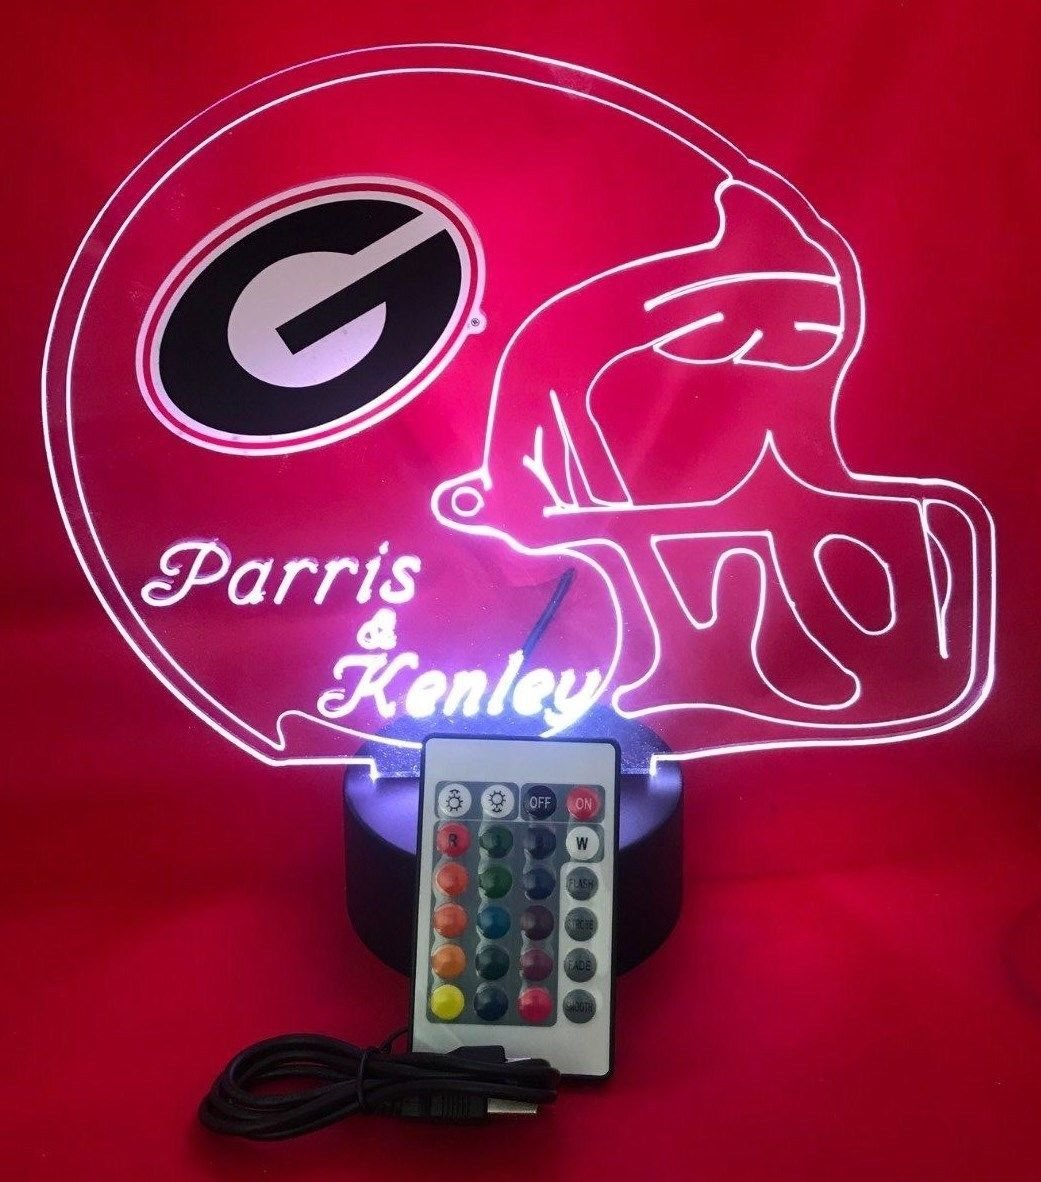 Georgia Bulldogs NCAA College Football Light Up Lamp LED University of Georgia Desk Table Lamp, Our Newest Feature – It s Wow, Comes with Remote, 16 Color Options, Dimmer, Free Engraving, Great Gift